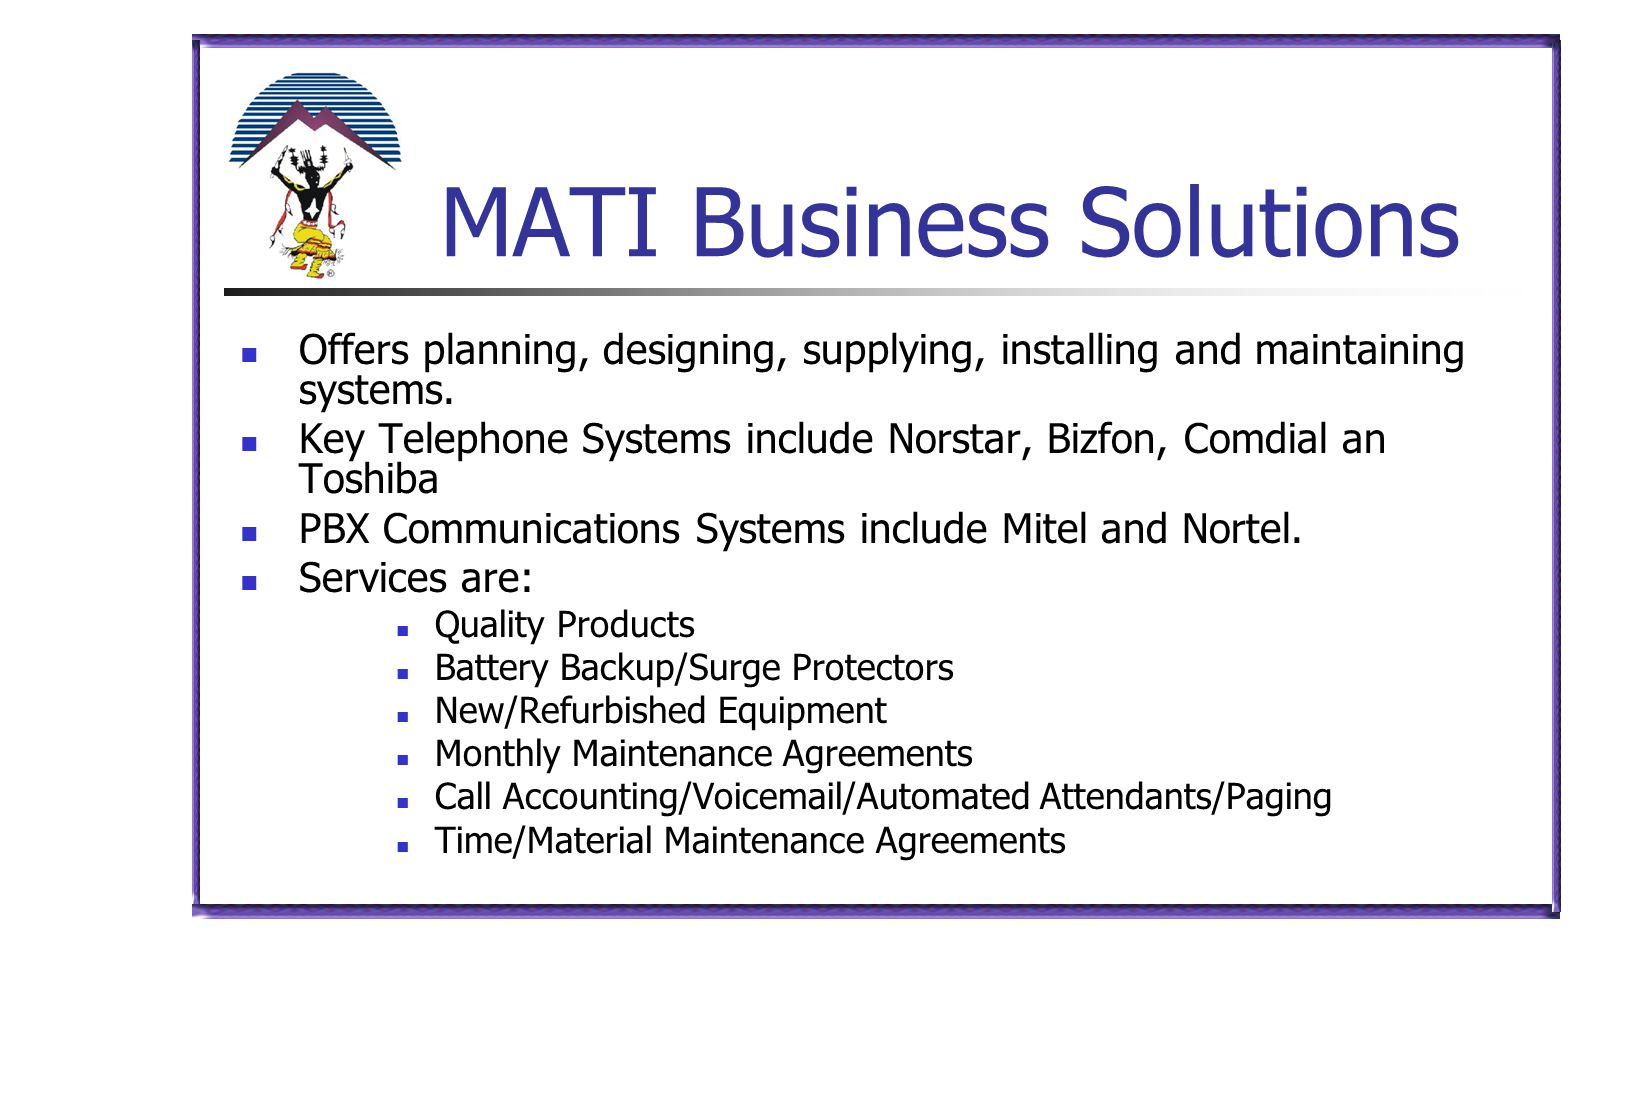 MATI Business Solutions Offers planning, designing, supplying, installing and maintaining systems. Key Telephone Systems include Norstar, Bizfon, Comd